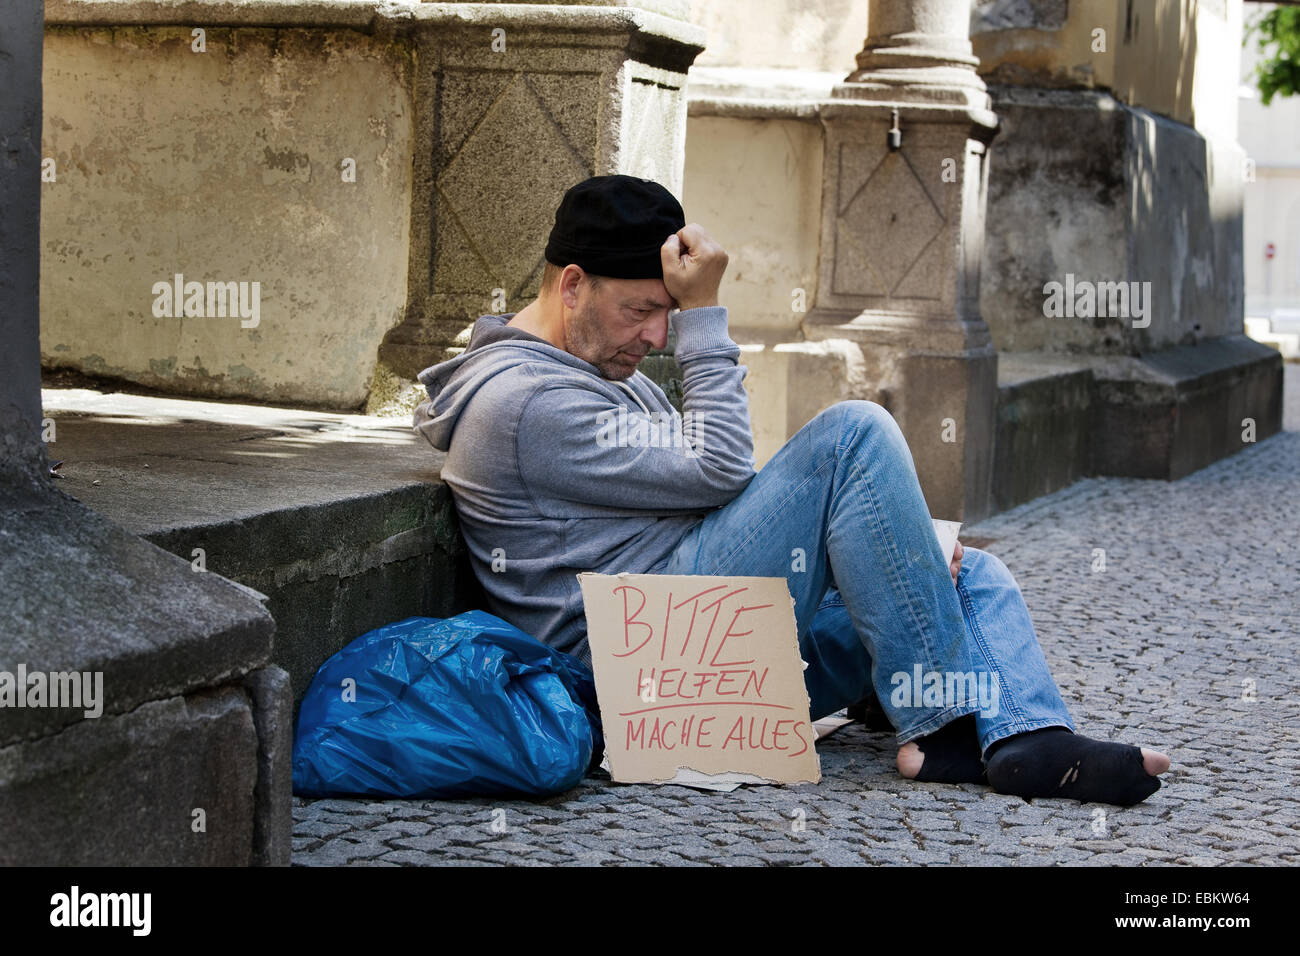 unemployed man begging for a job, Germany - Stock Image